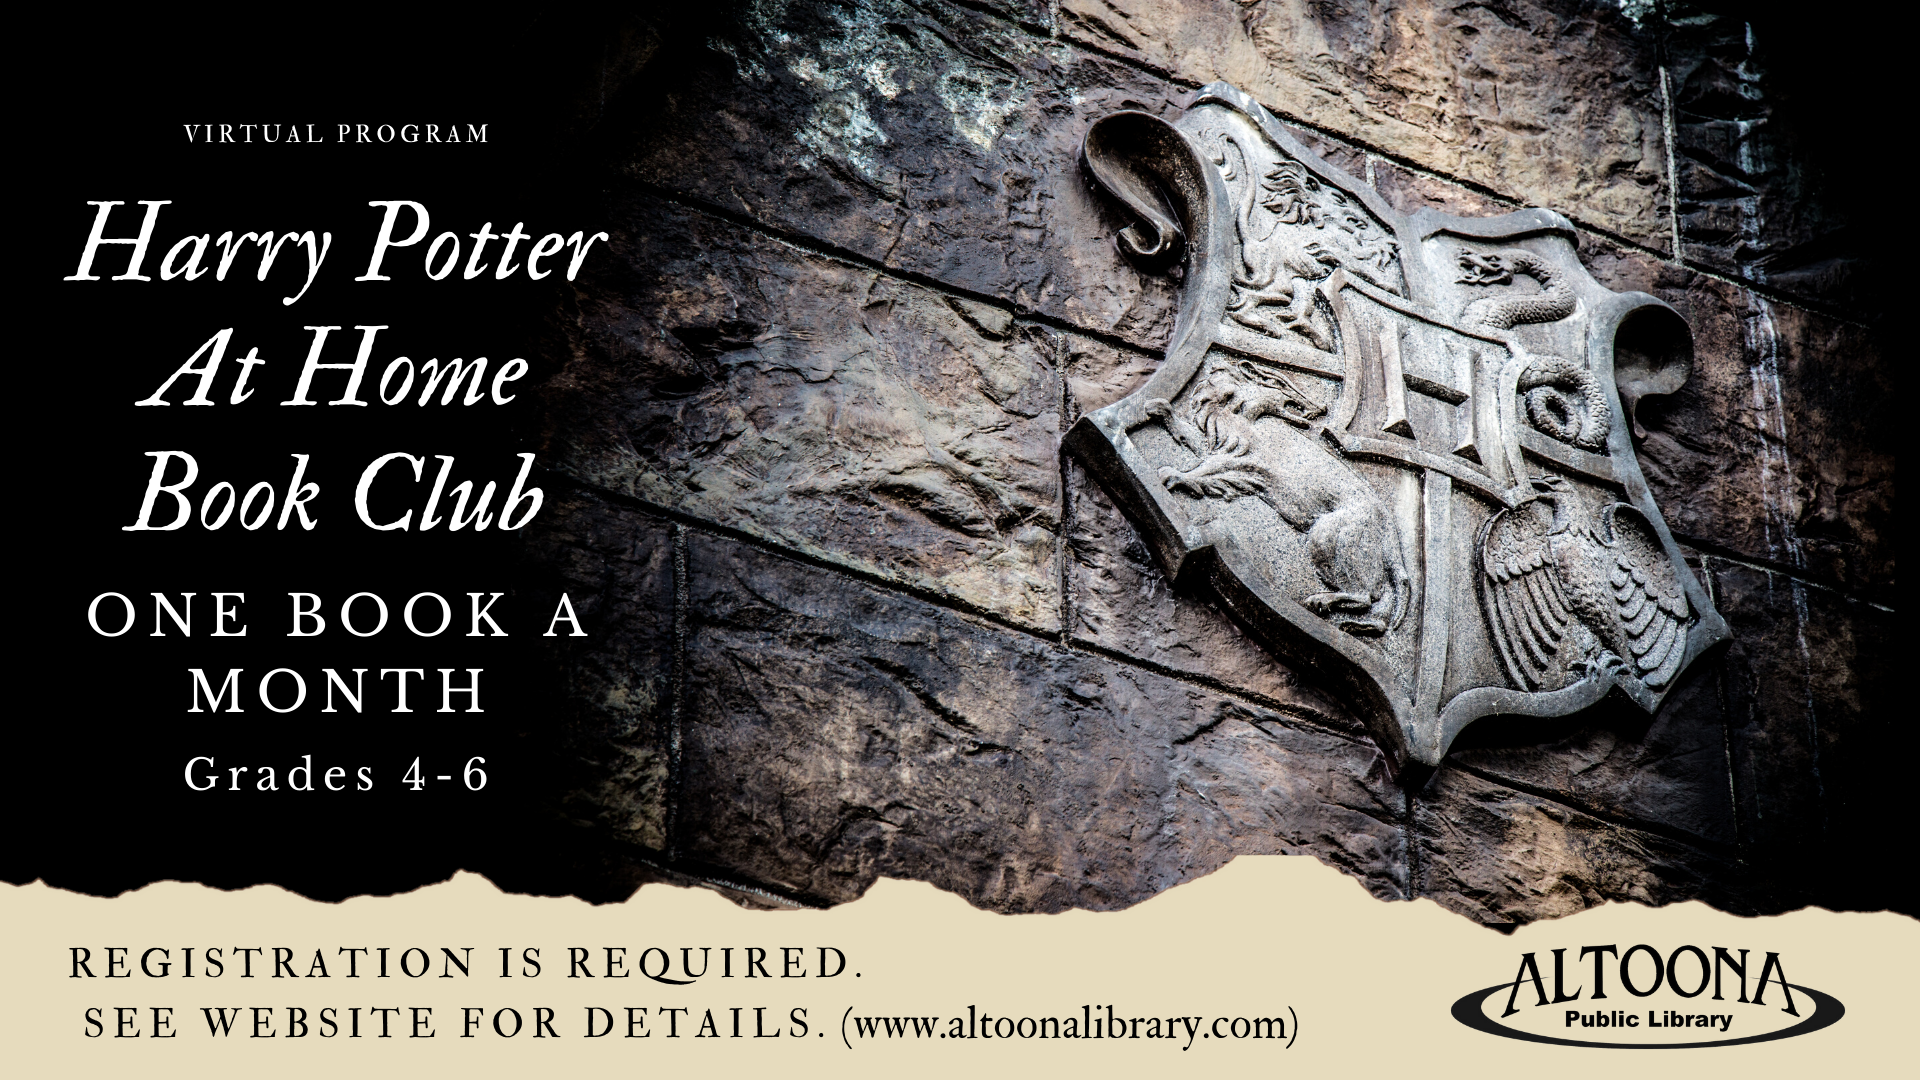 Harry Potter At Home Book Club (Virtual)